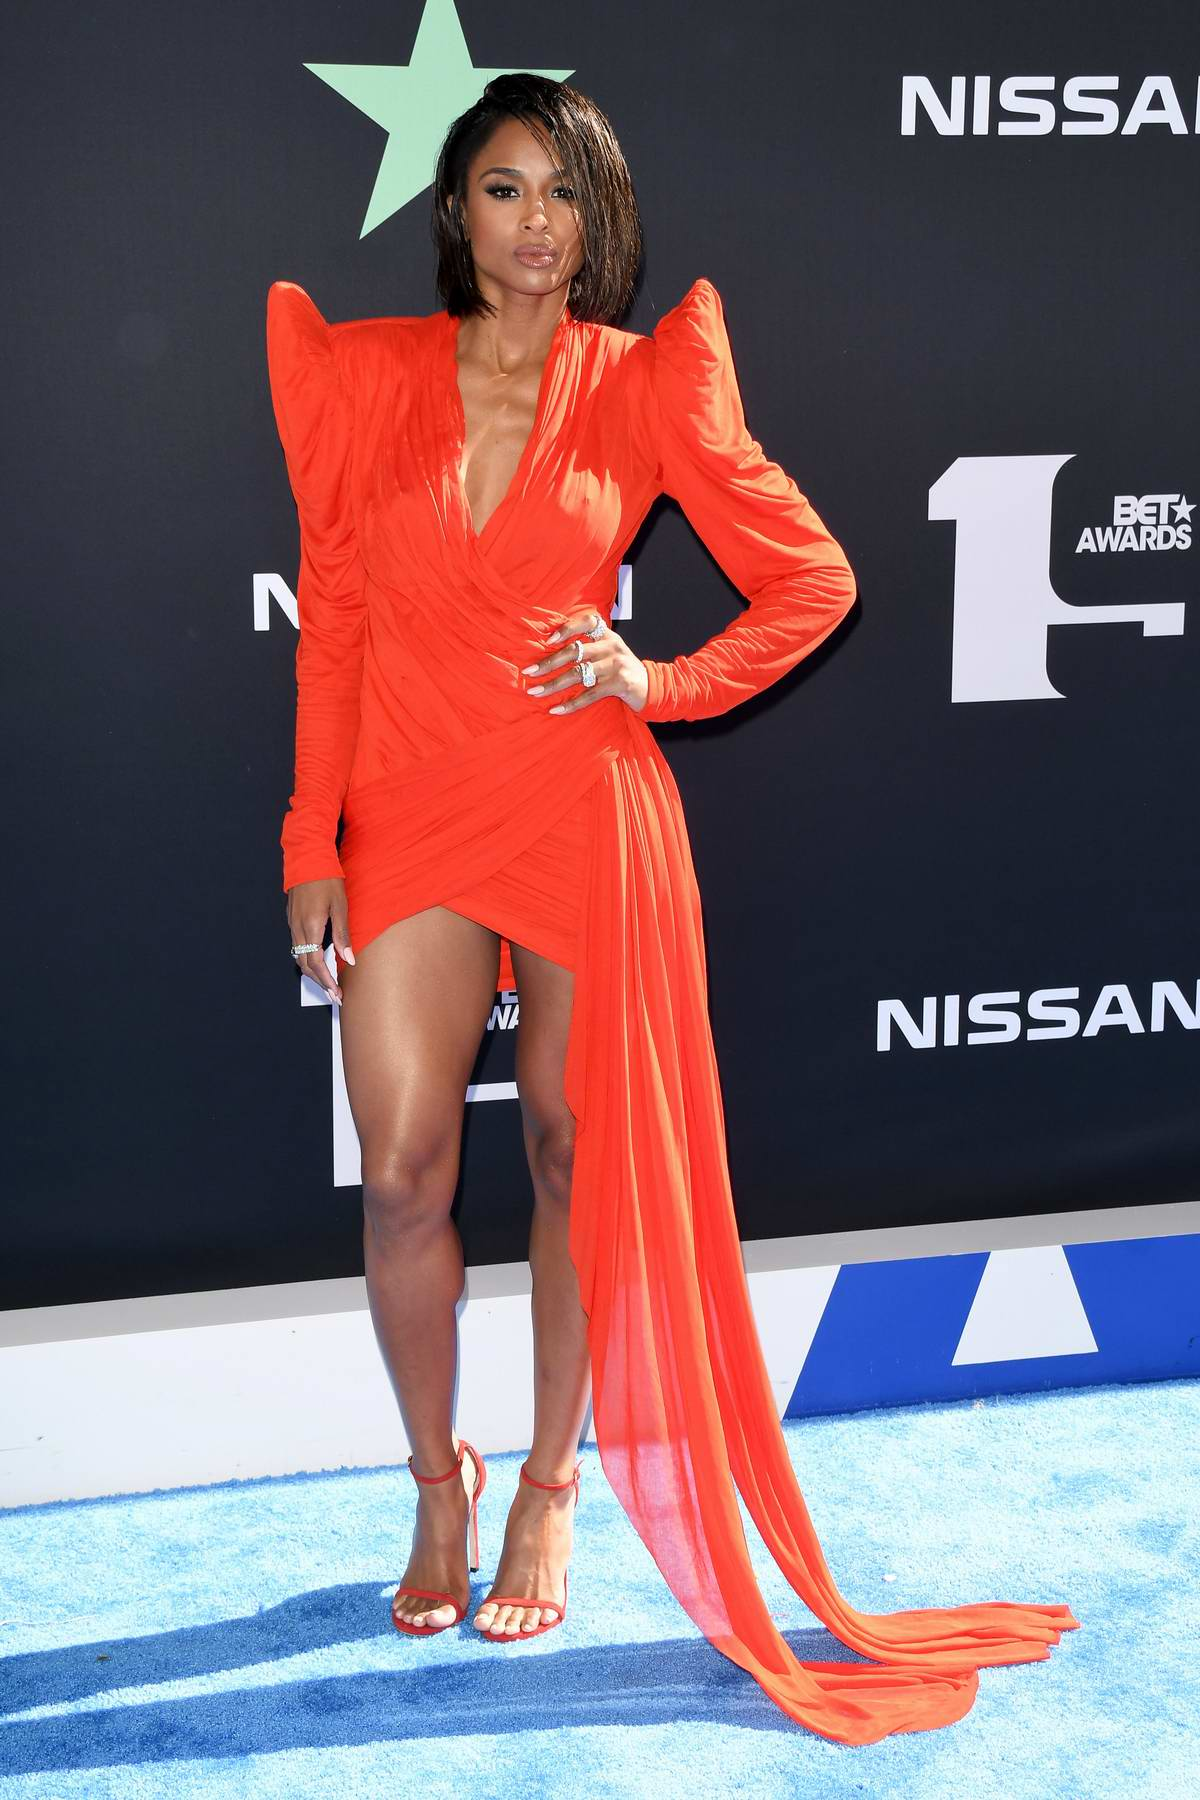 Ciara attends the 2019 BET Awards held at Microsoft Theater in Los Angeles